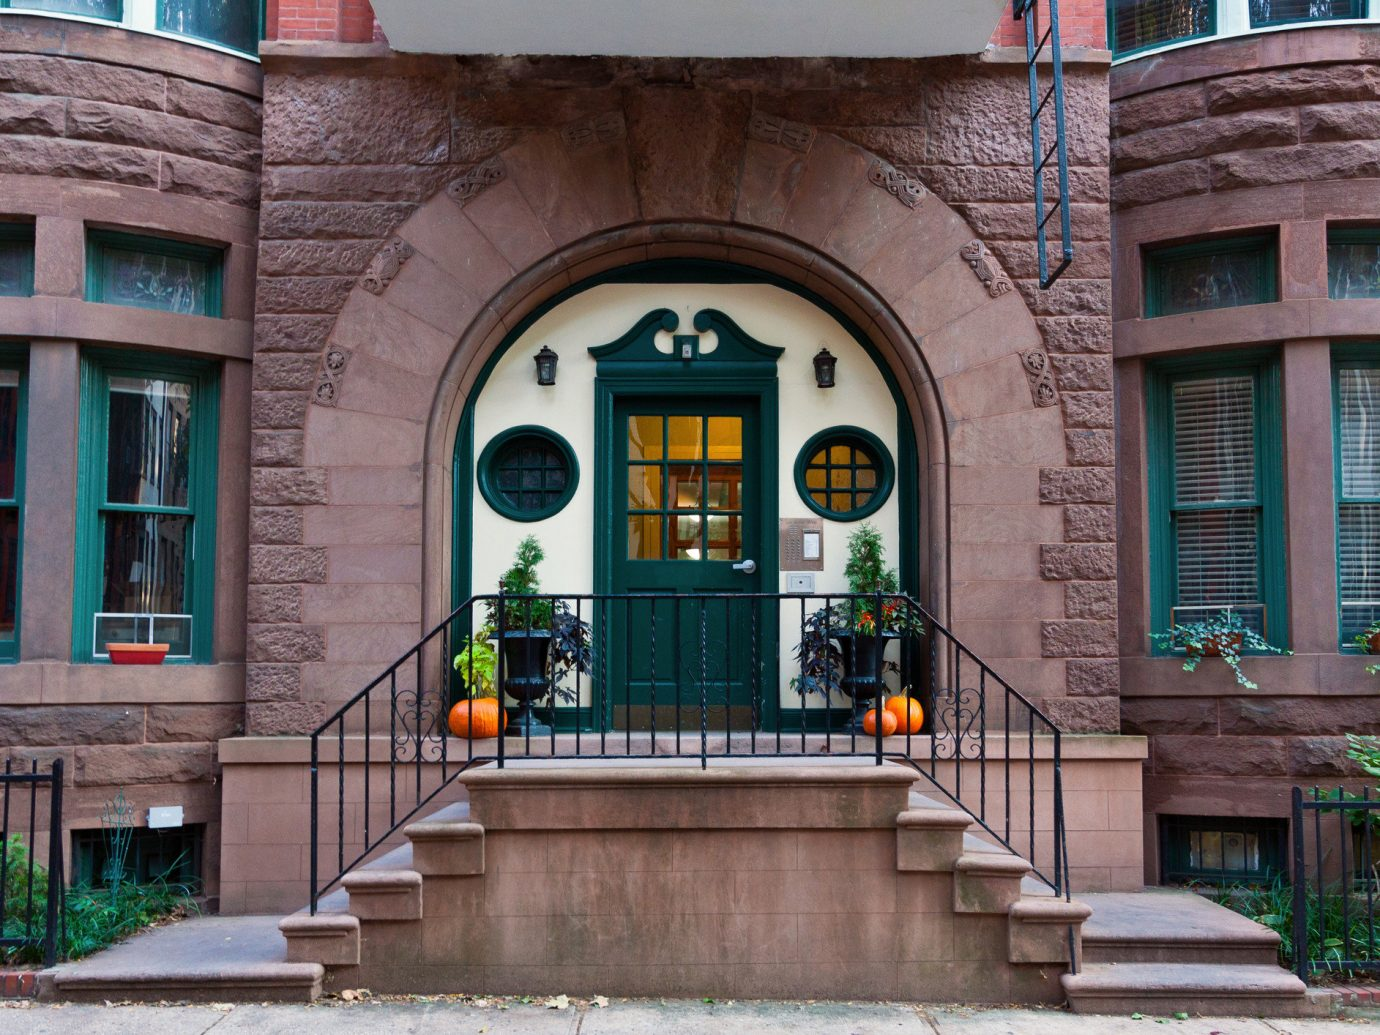 Offbeat building outdoor landmark house urban area neighbourhood Architecture estate facade home Downtown sidewalk window Courtyard mansion brick palace arch stone